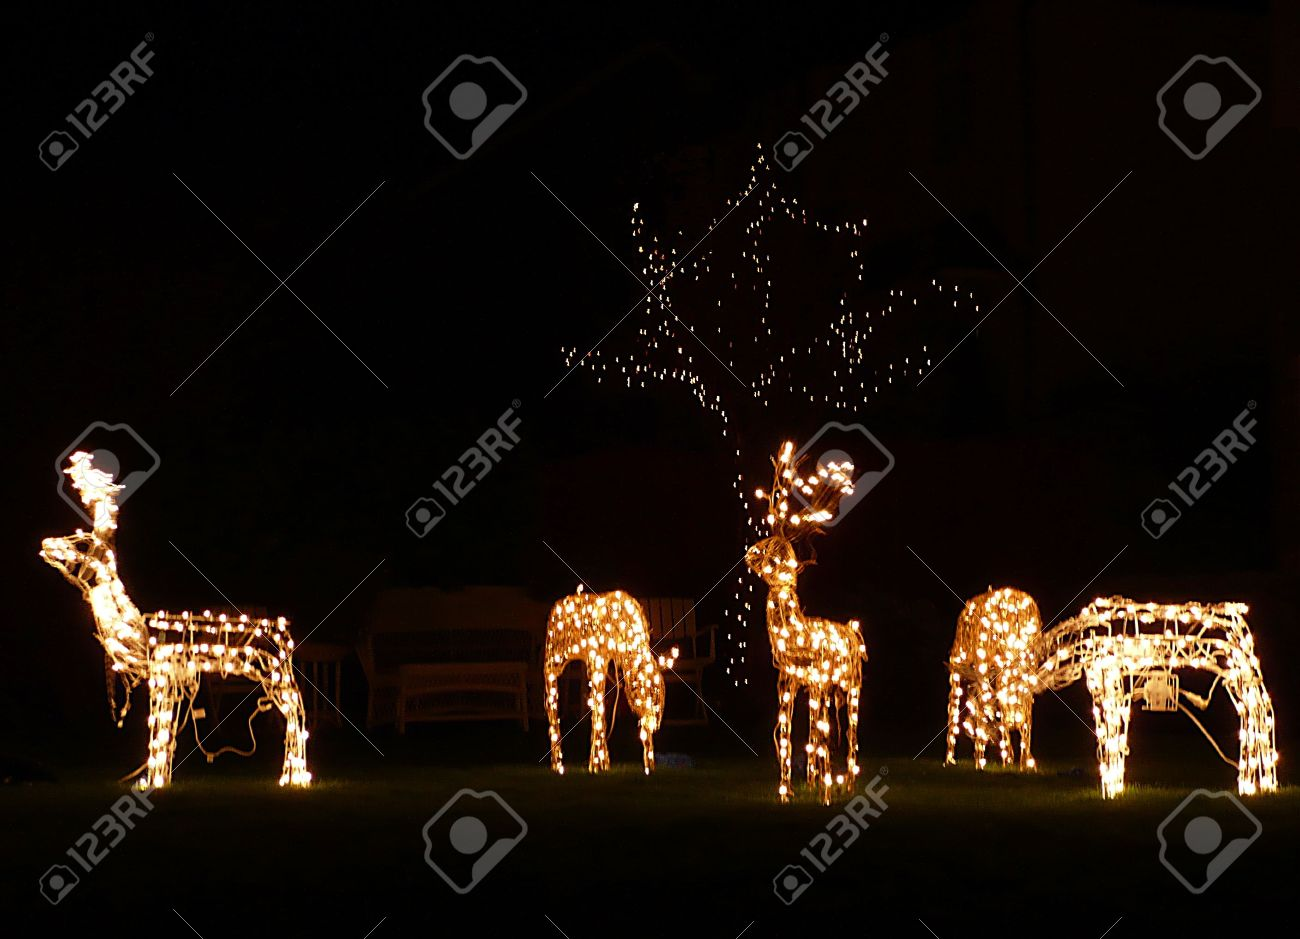 Christmas outdoor decorations lit reindeer south west england christmas outdoor decorations lit reindeer south west england stock photo 9937397 aloadofball Image collections